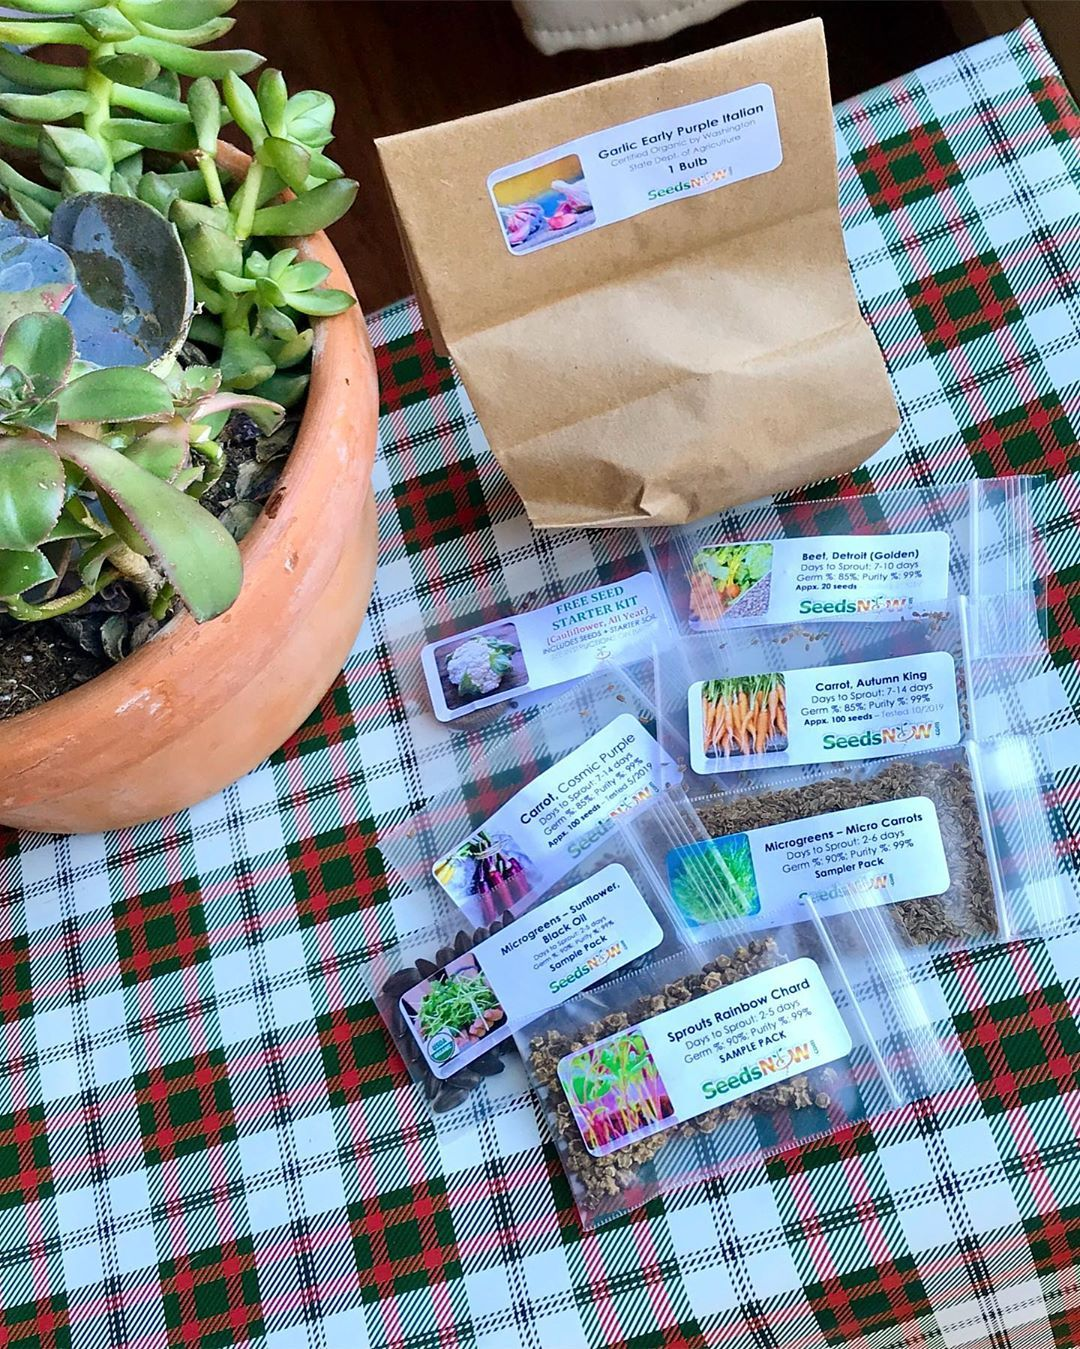 delivery 📬 These came in the mail yesterday! They're all new for me and I'm so excited 😊 Can't wait to try my hand at growing and 🌱. @seeds_now . . .